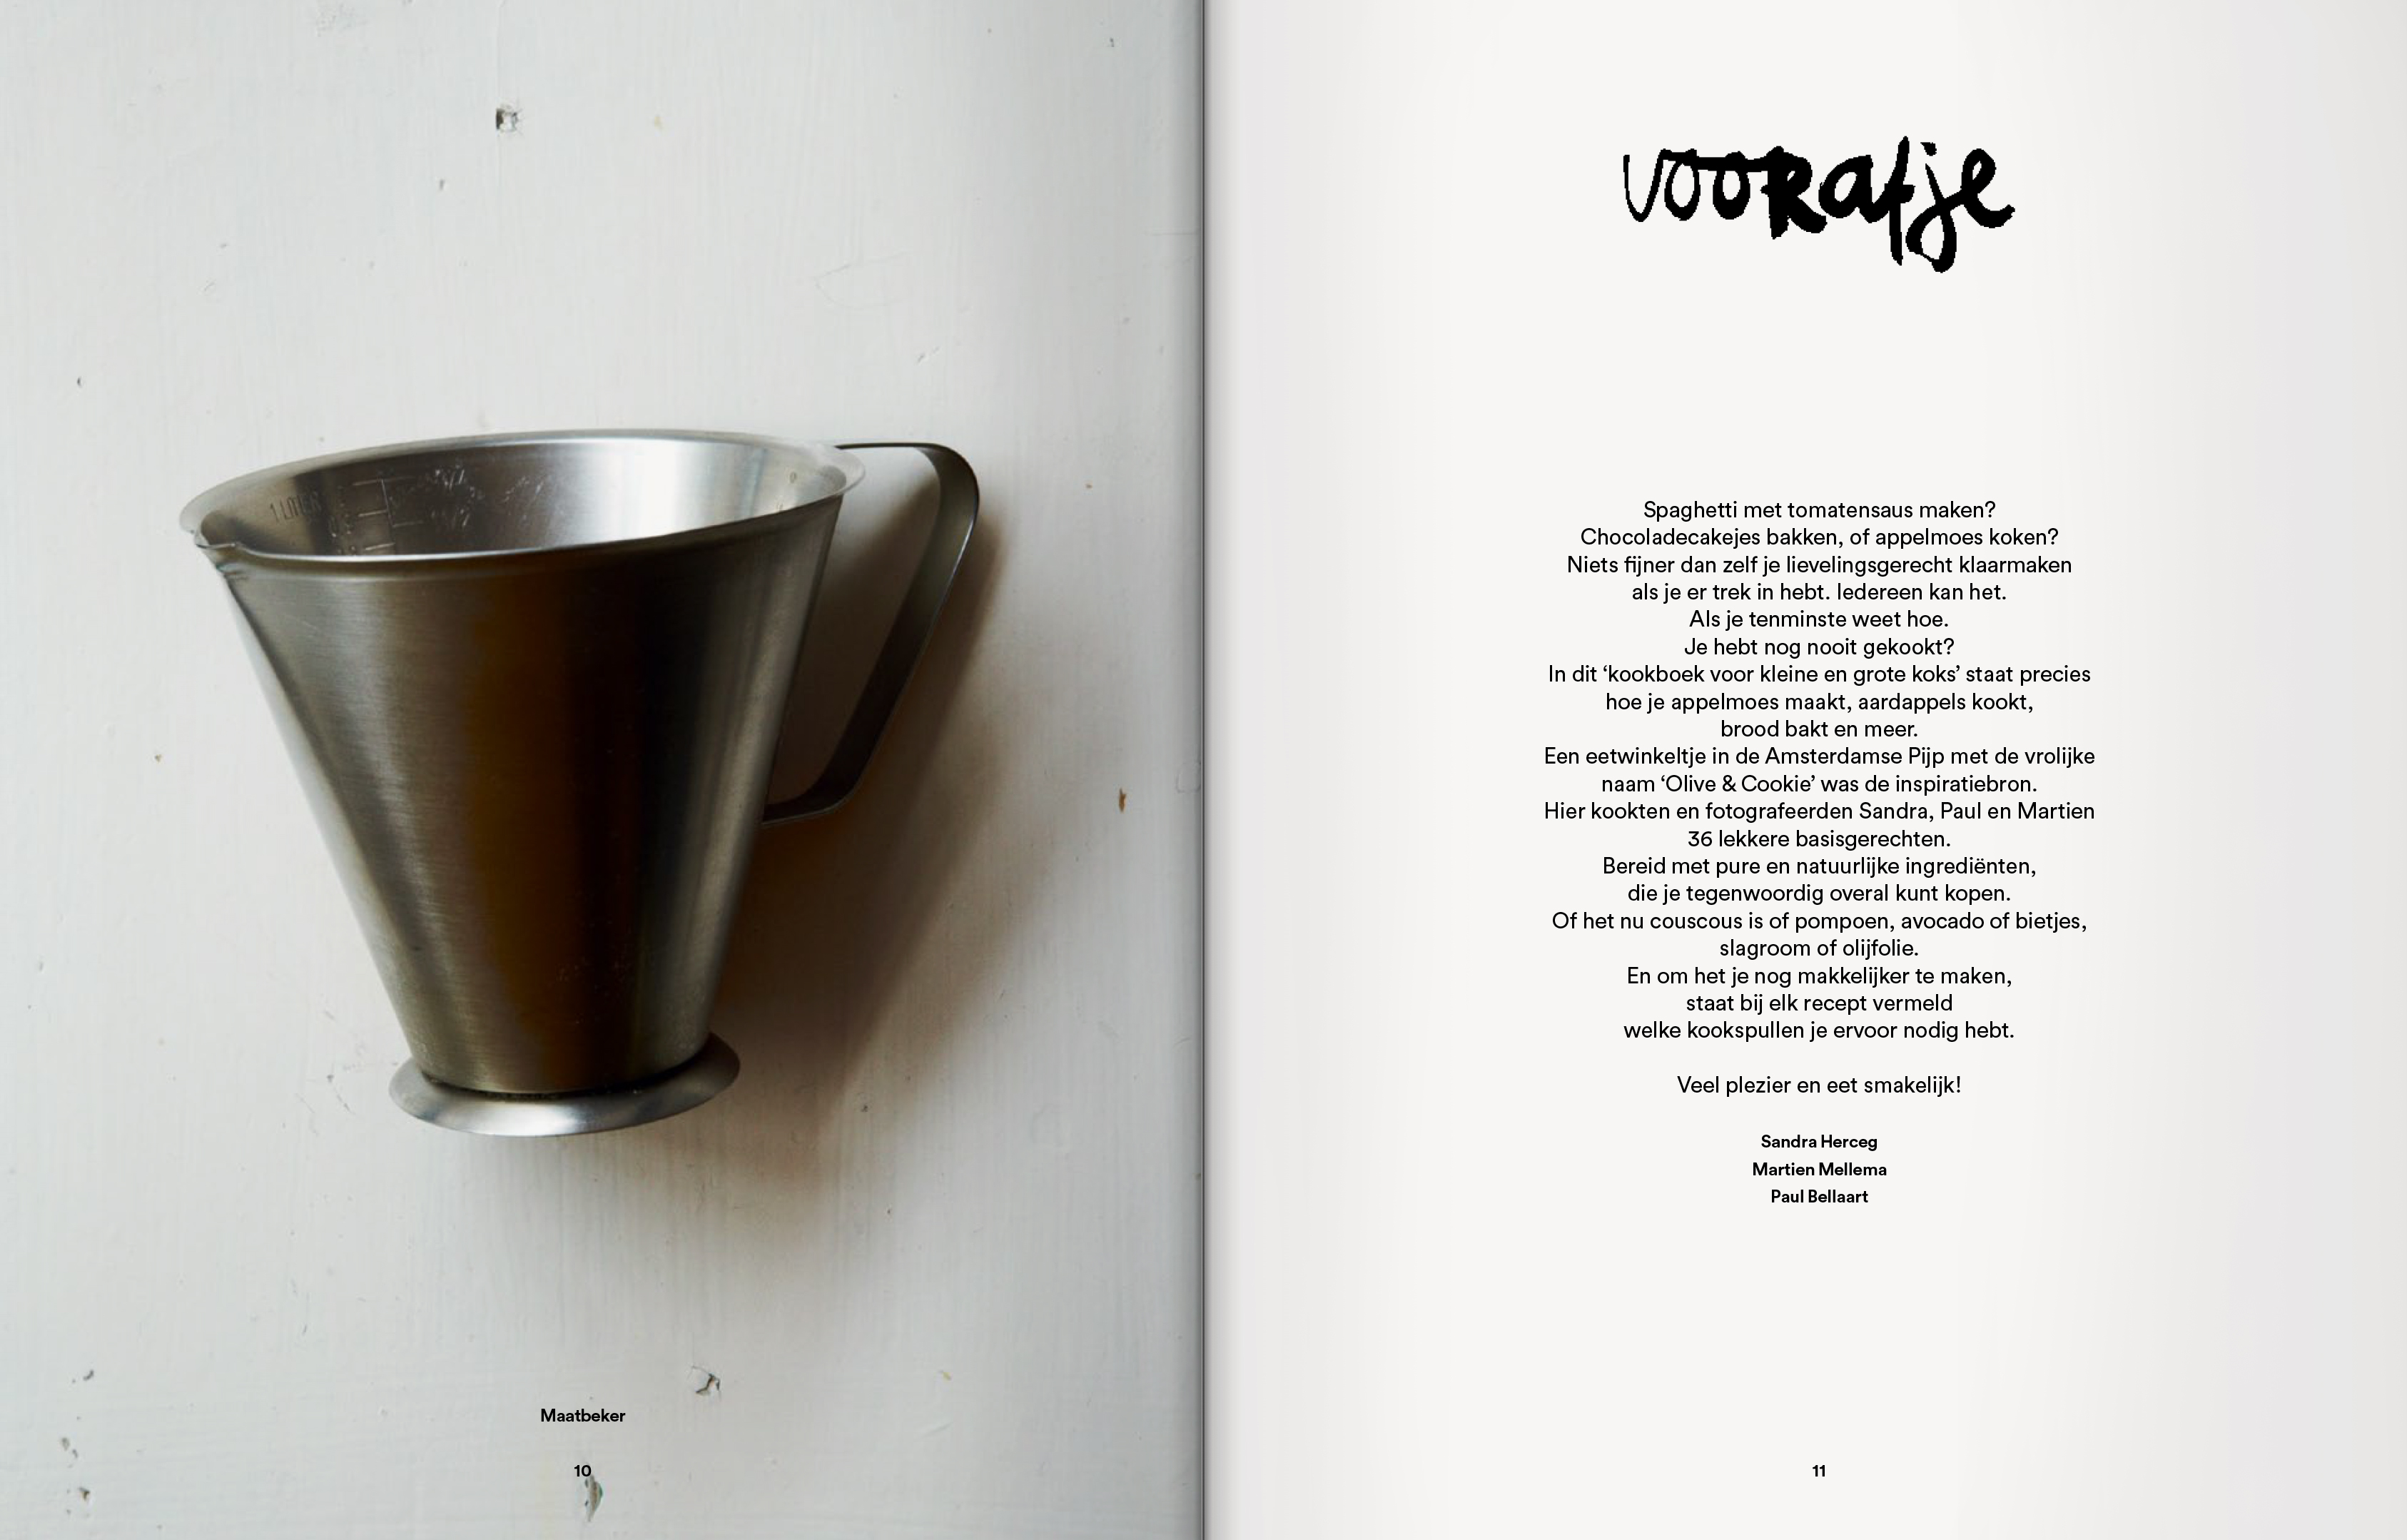 kookboek-mockup-MM-4